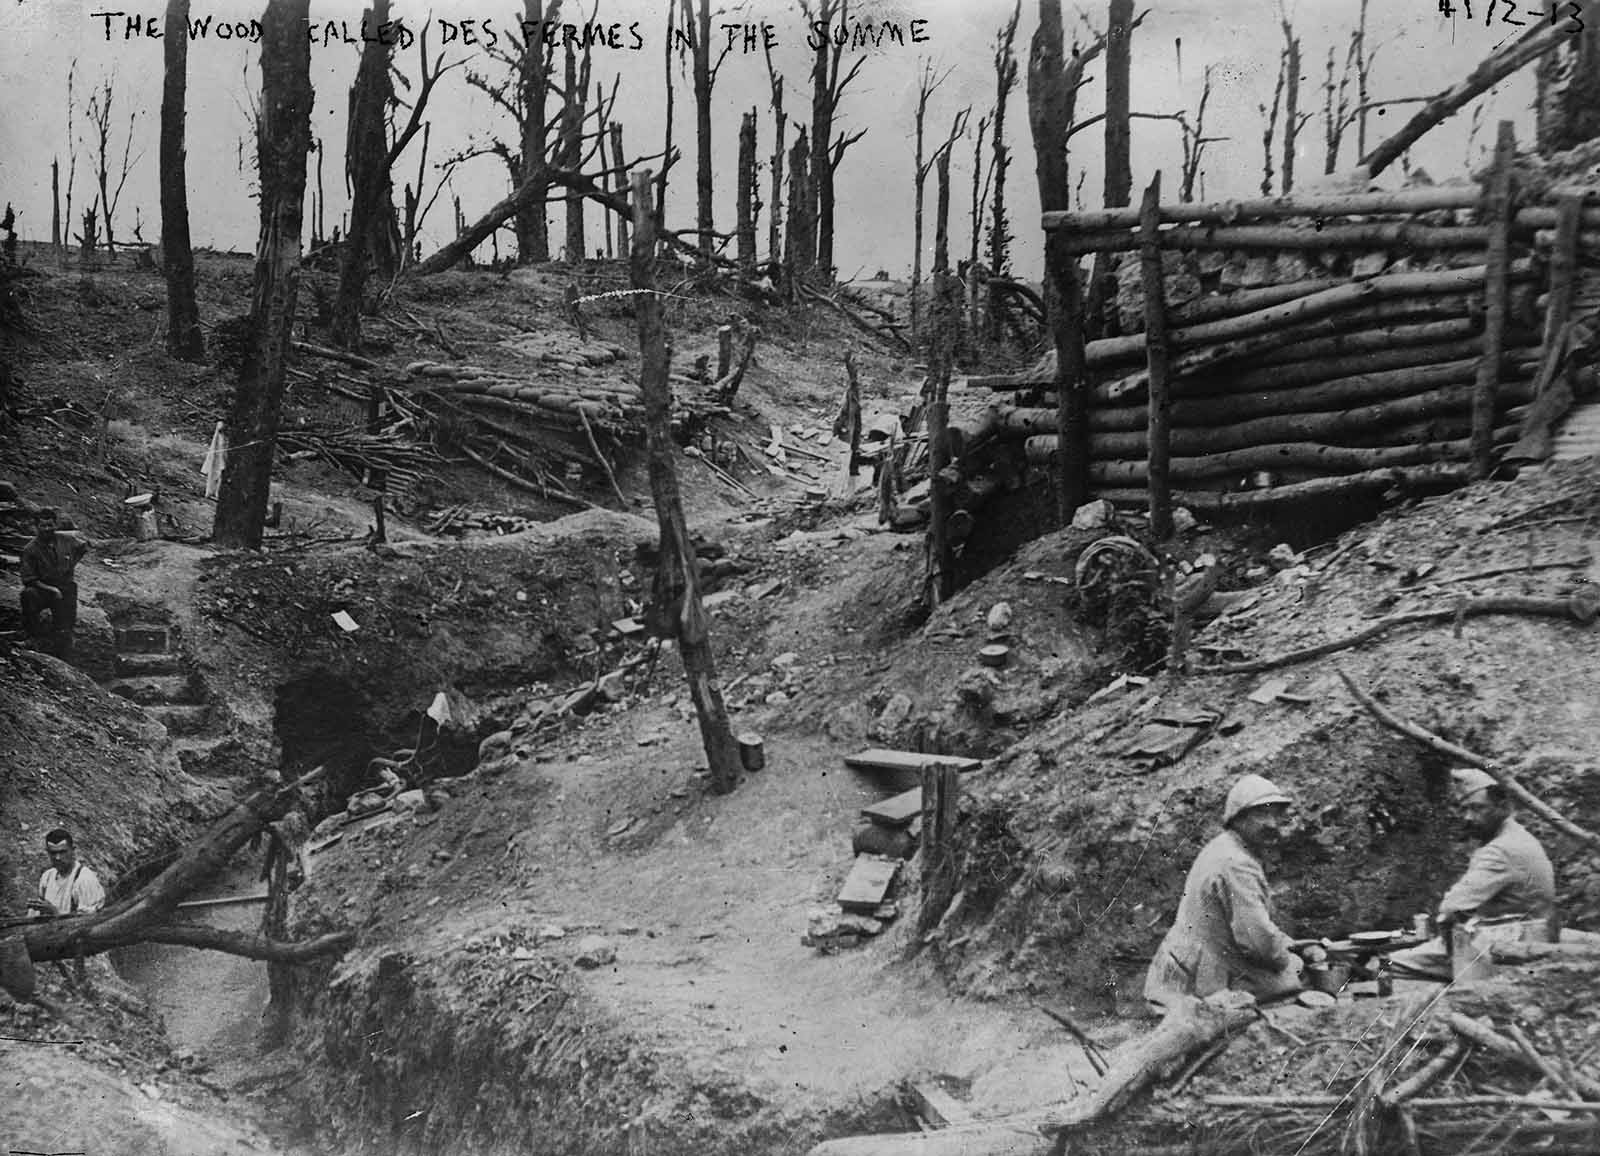 Soldiers sit in the trenches of the wood called Des Fermes in the Somme.